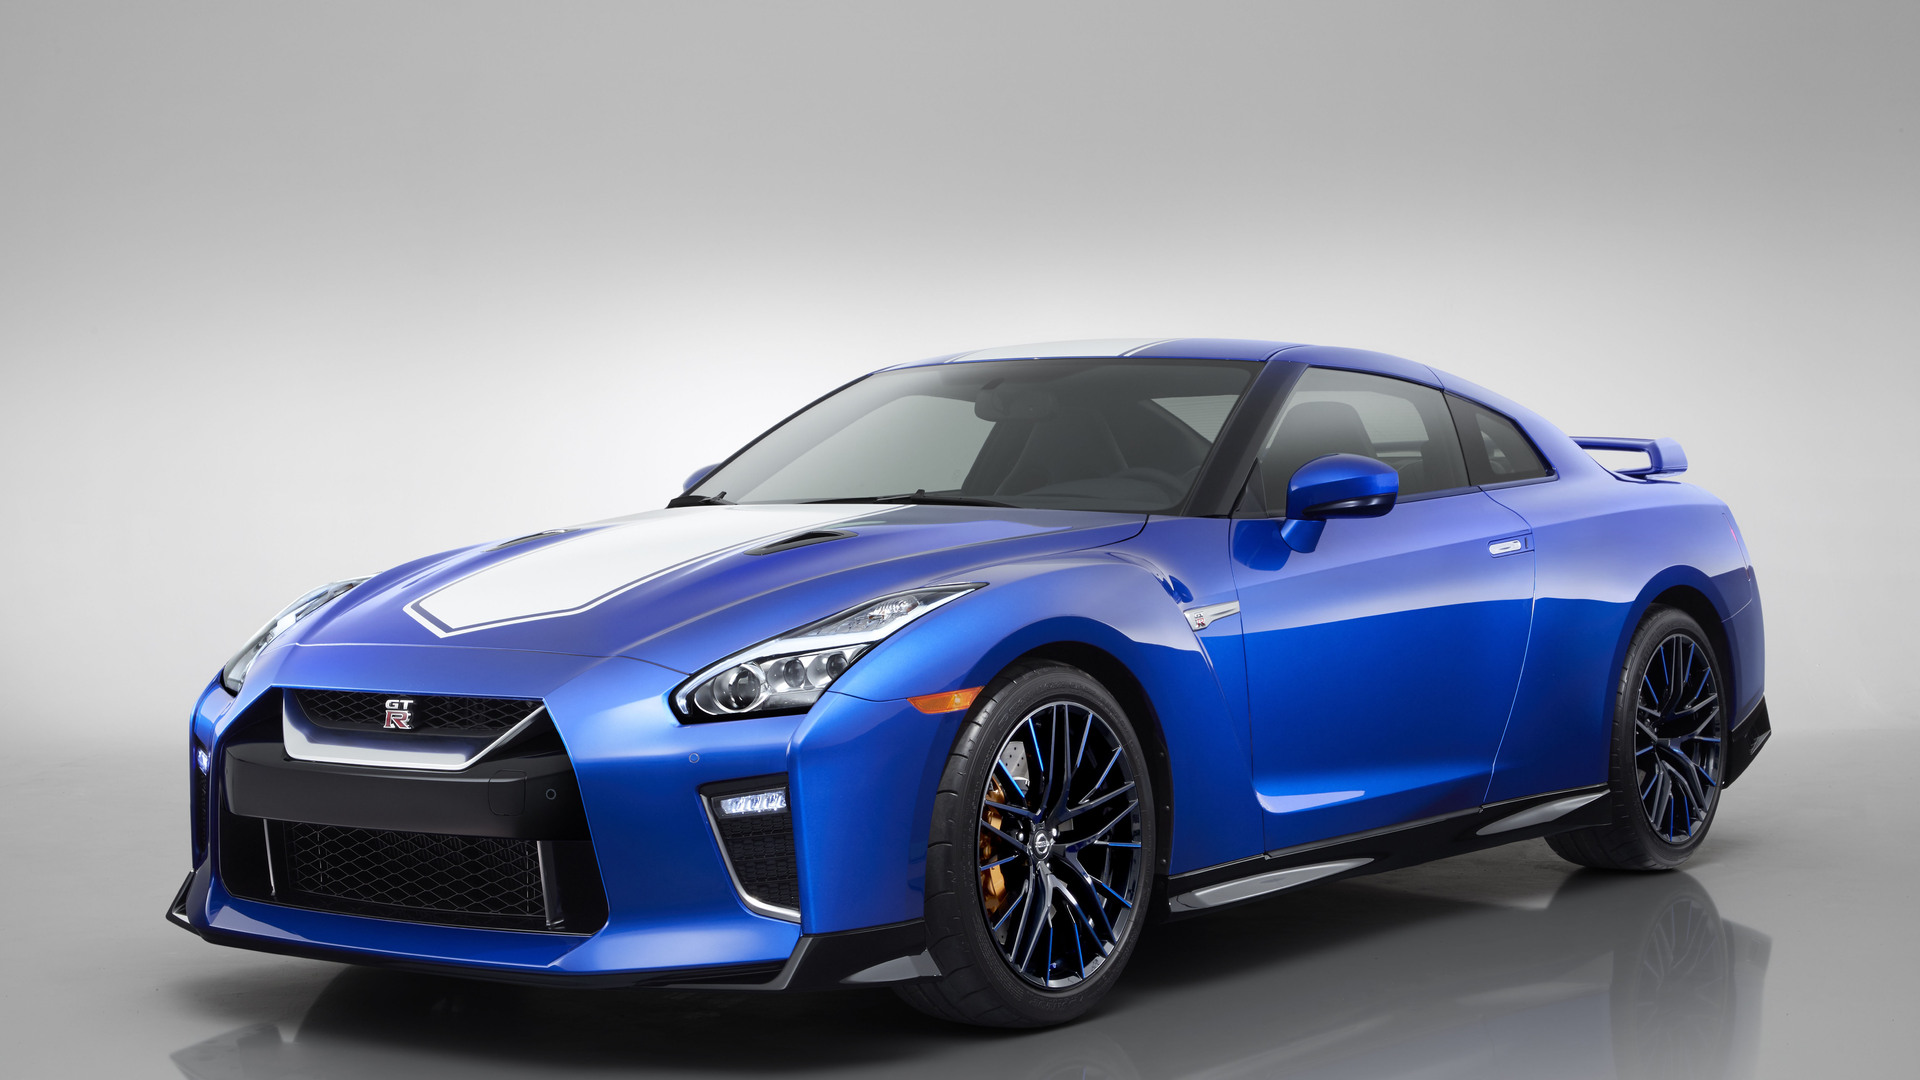 1920x1080 2020 nissan gt r r35 50th anniversary edition 5k laptop full hd 1080p hd 4k wallpapers. Black Bedroom Furniture Sets. Home Design Ideas